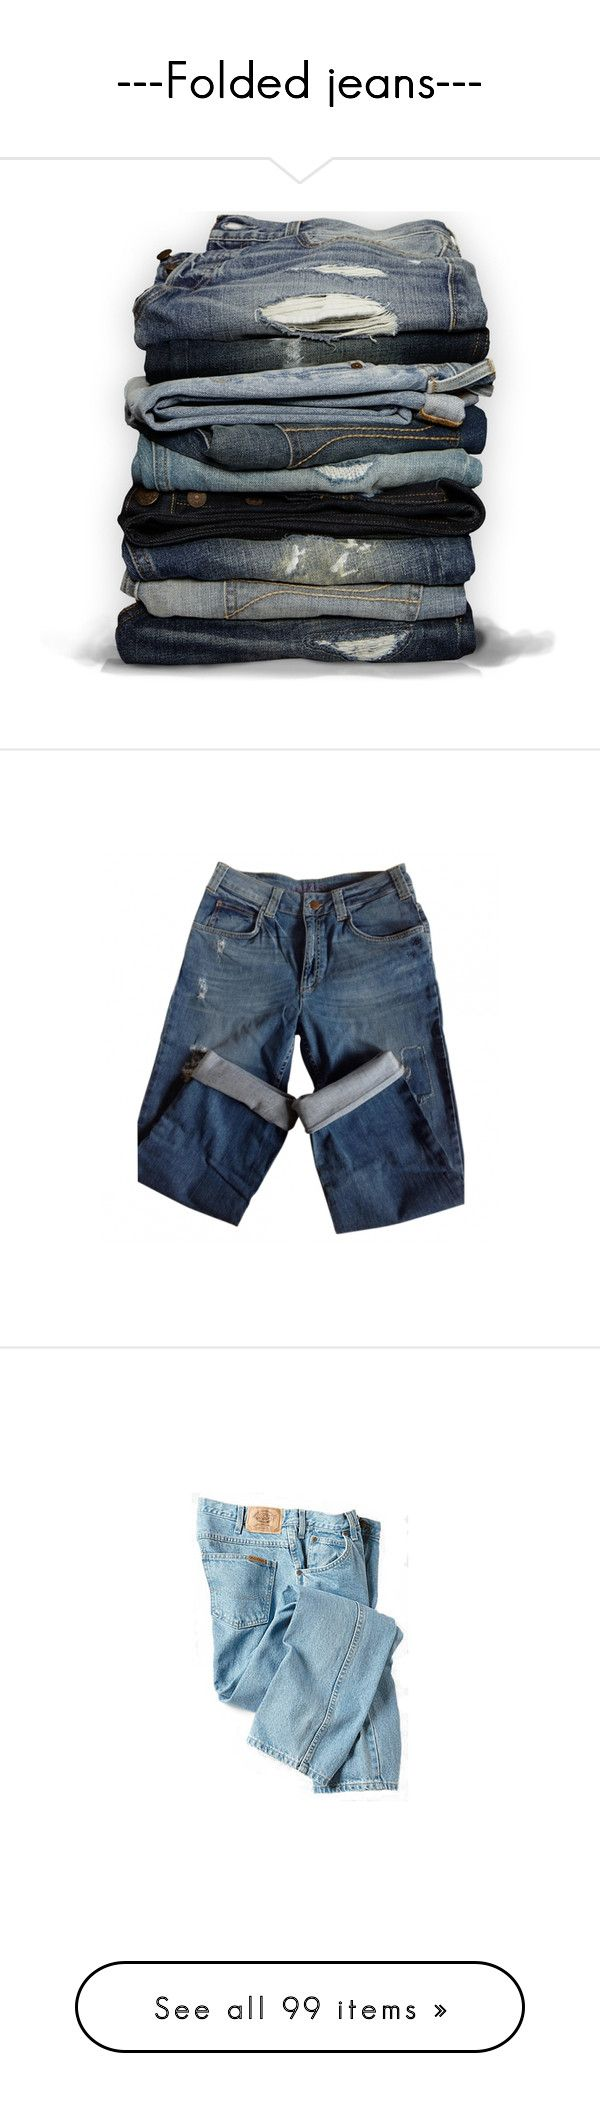 """---Folded jeans---"" by centurythe ❤ liked on Polyvore featuring jeans, pants, bottoms, fillers, blue jeans, hollister co jeans, hollister co., checkered jeans, trousers and boyfriend jeans"